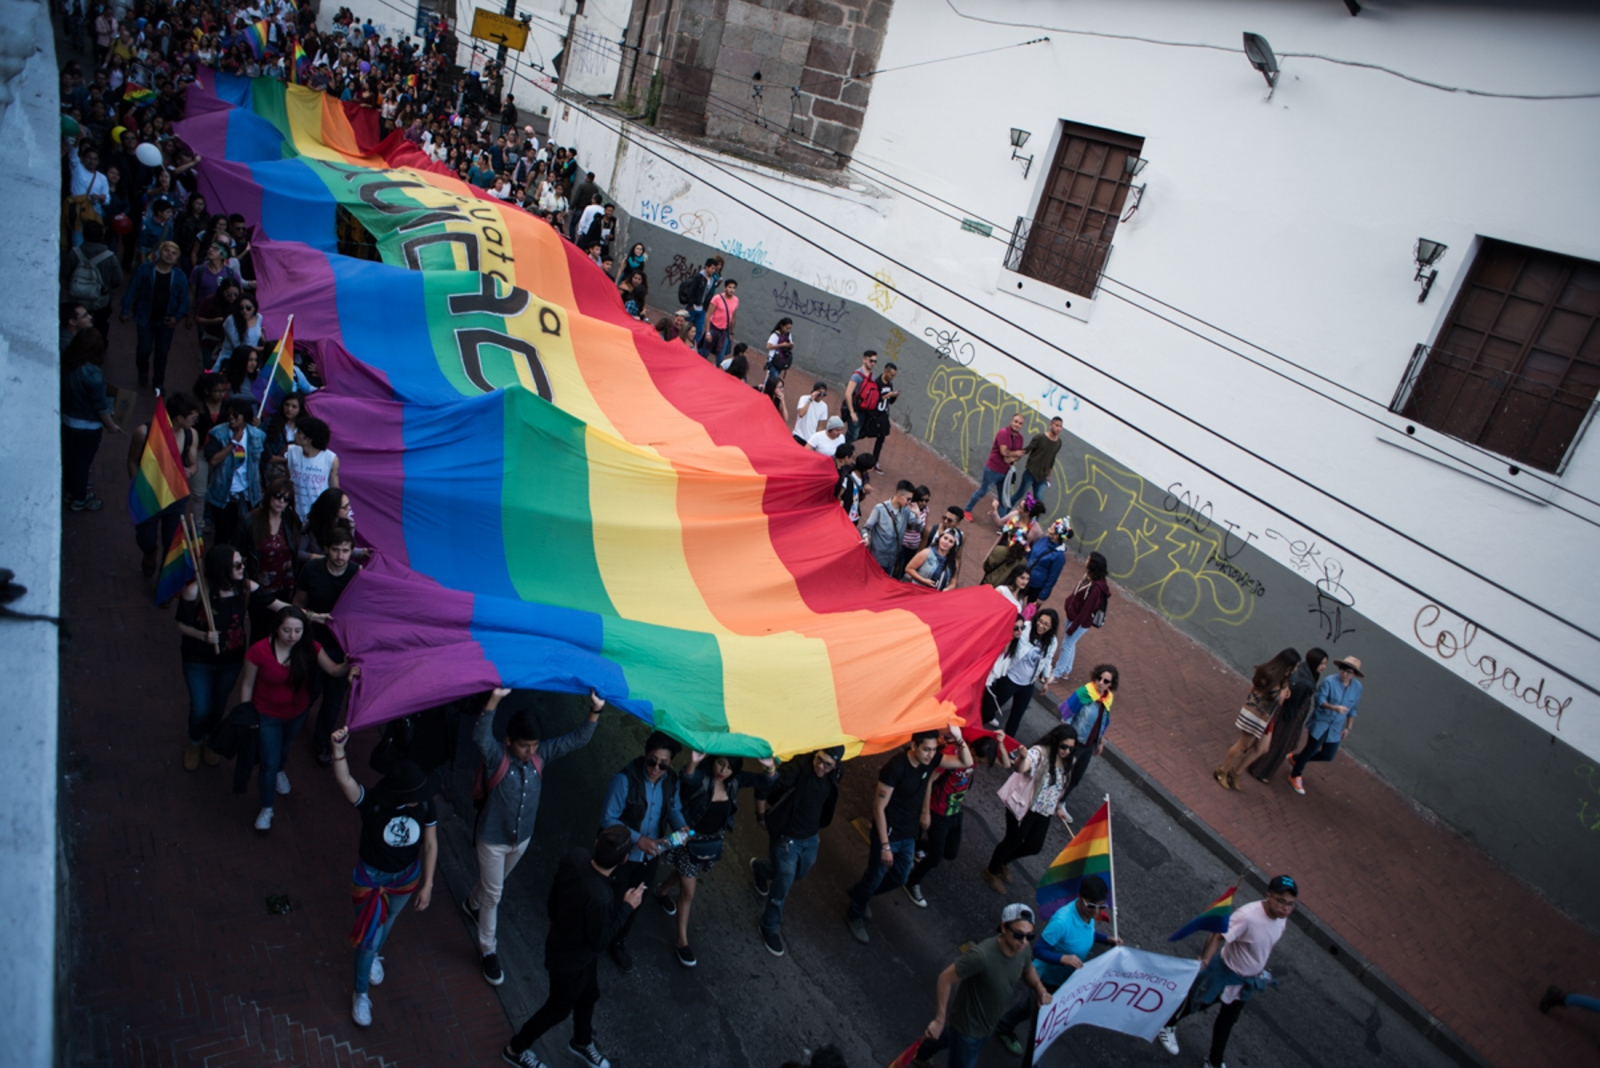 Hundreds of people are celebrating in the Pride parade.    Quito, 2017    Johis Alarcón / La Barra Espaciadora